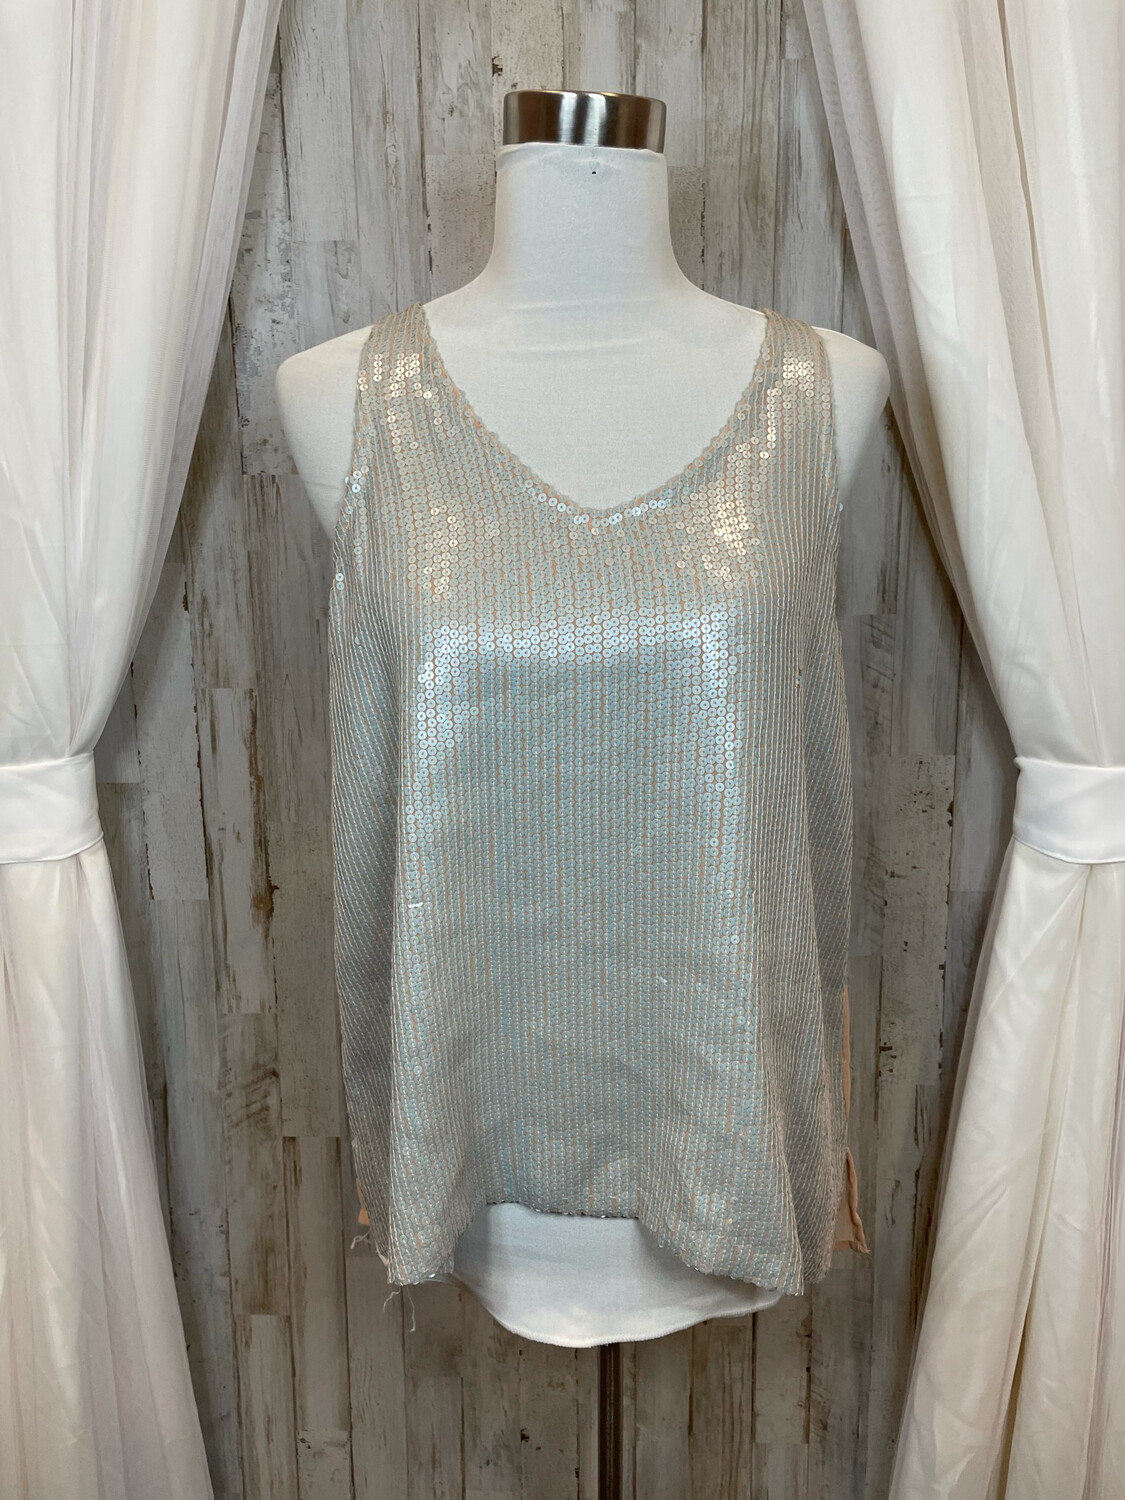 Piperlime Collection Silver Sequence Tank - S